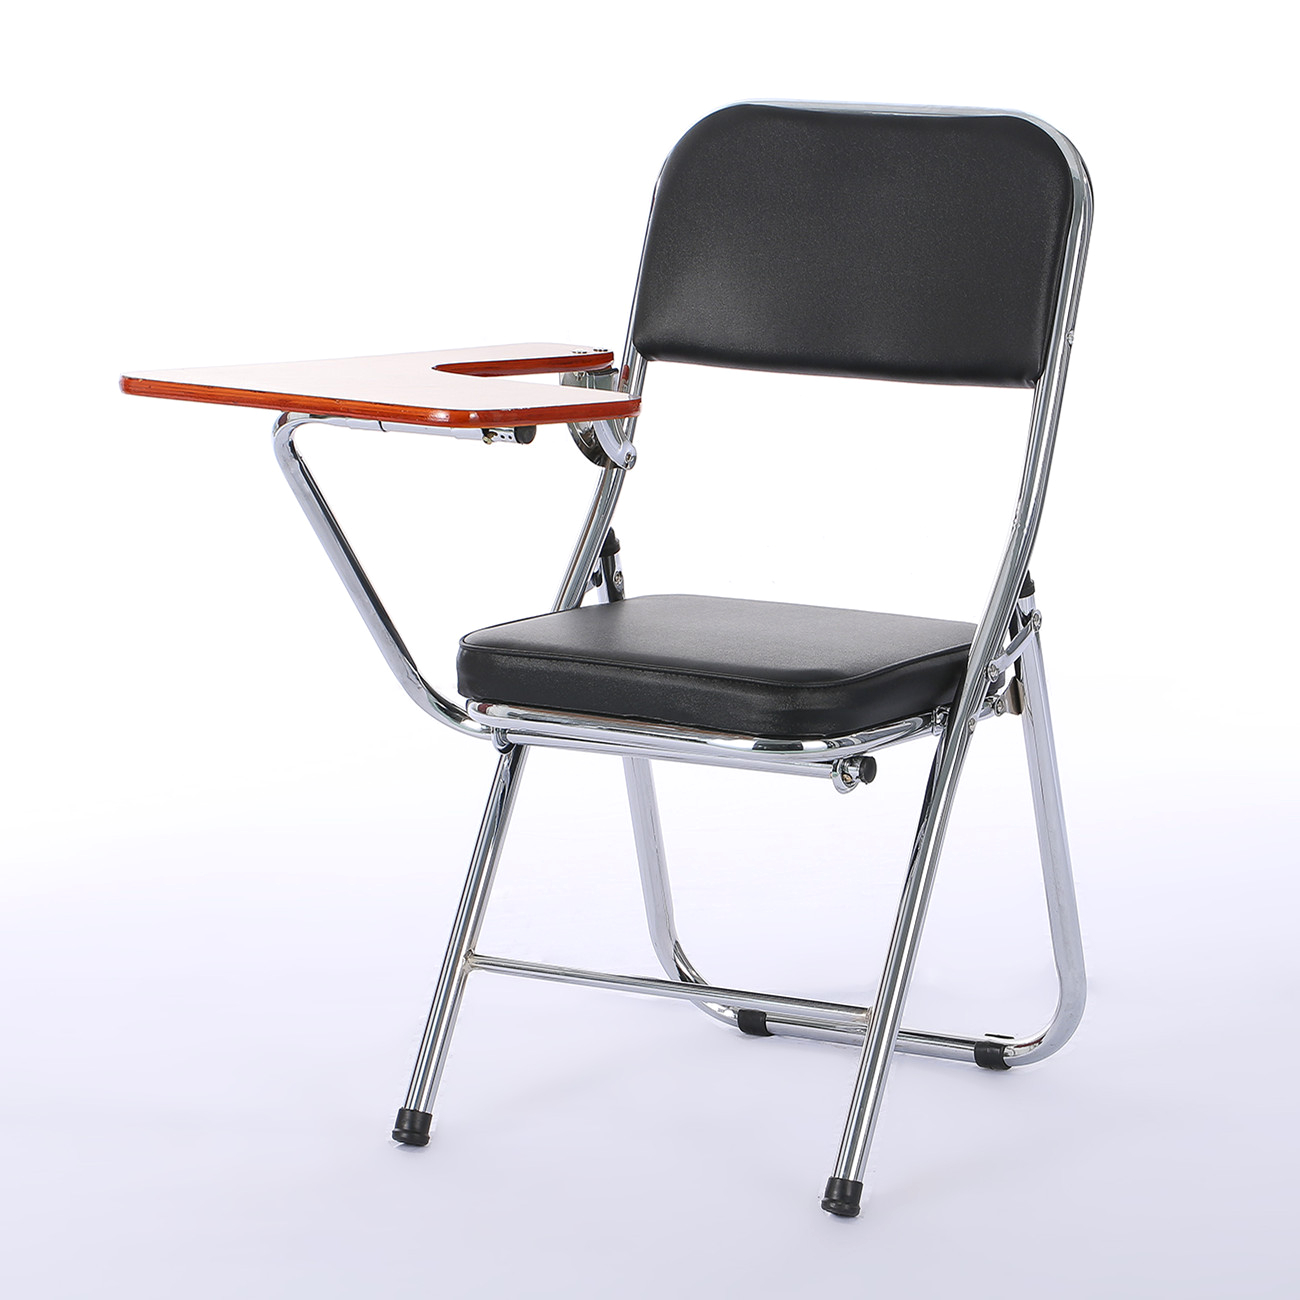 Chairs Comfortable Modern Fashion Staff Training Chair With Writing Board Folding Office Chair Portable Comfortable Student Learning Computer Chair In Conference Chairs